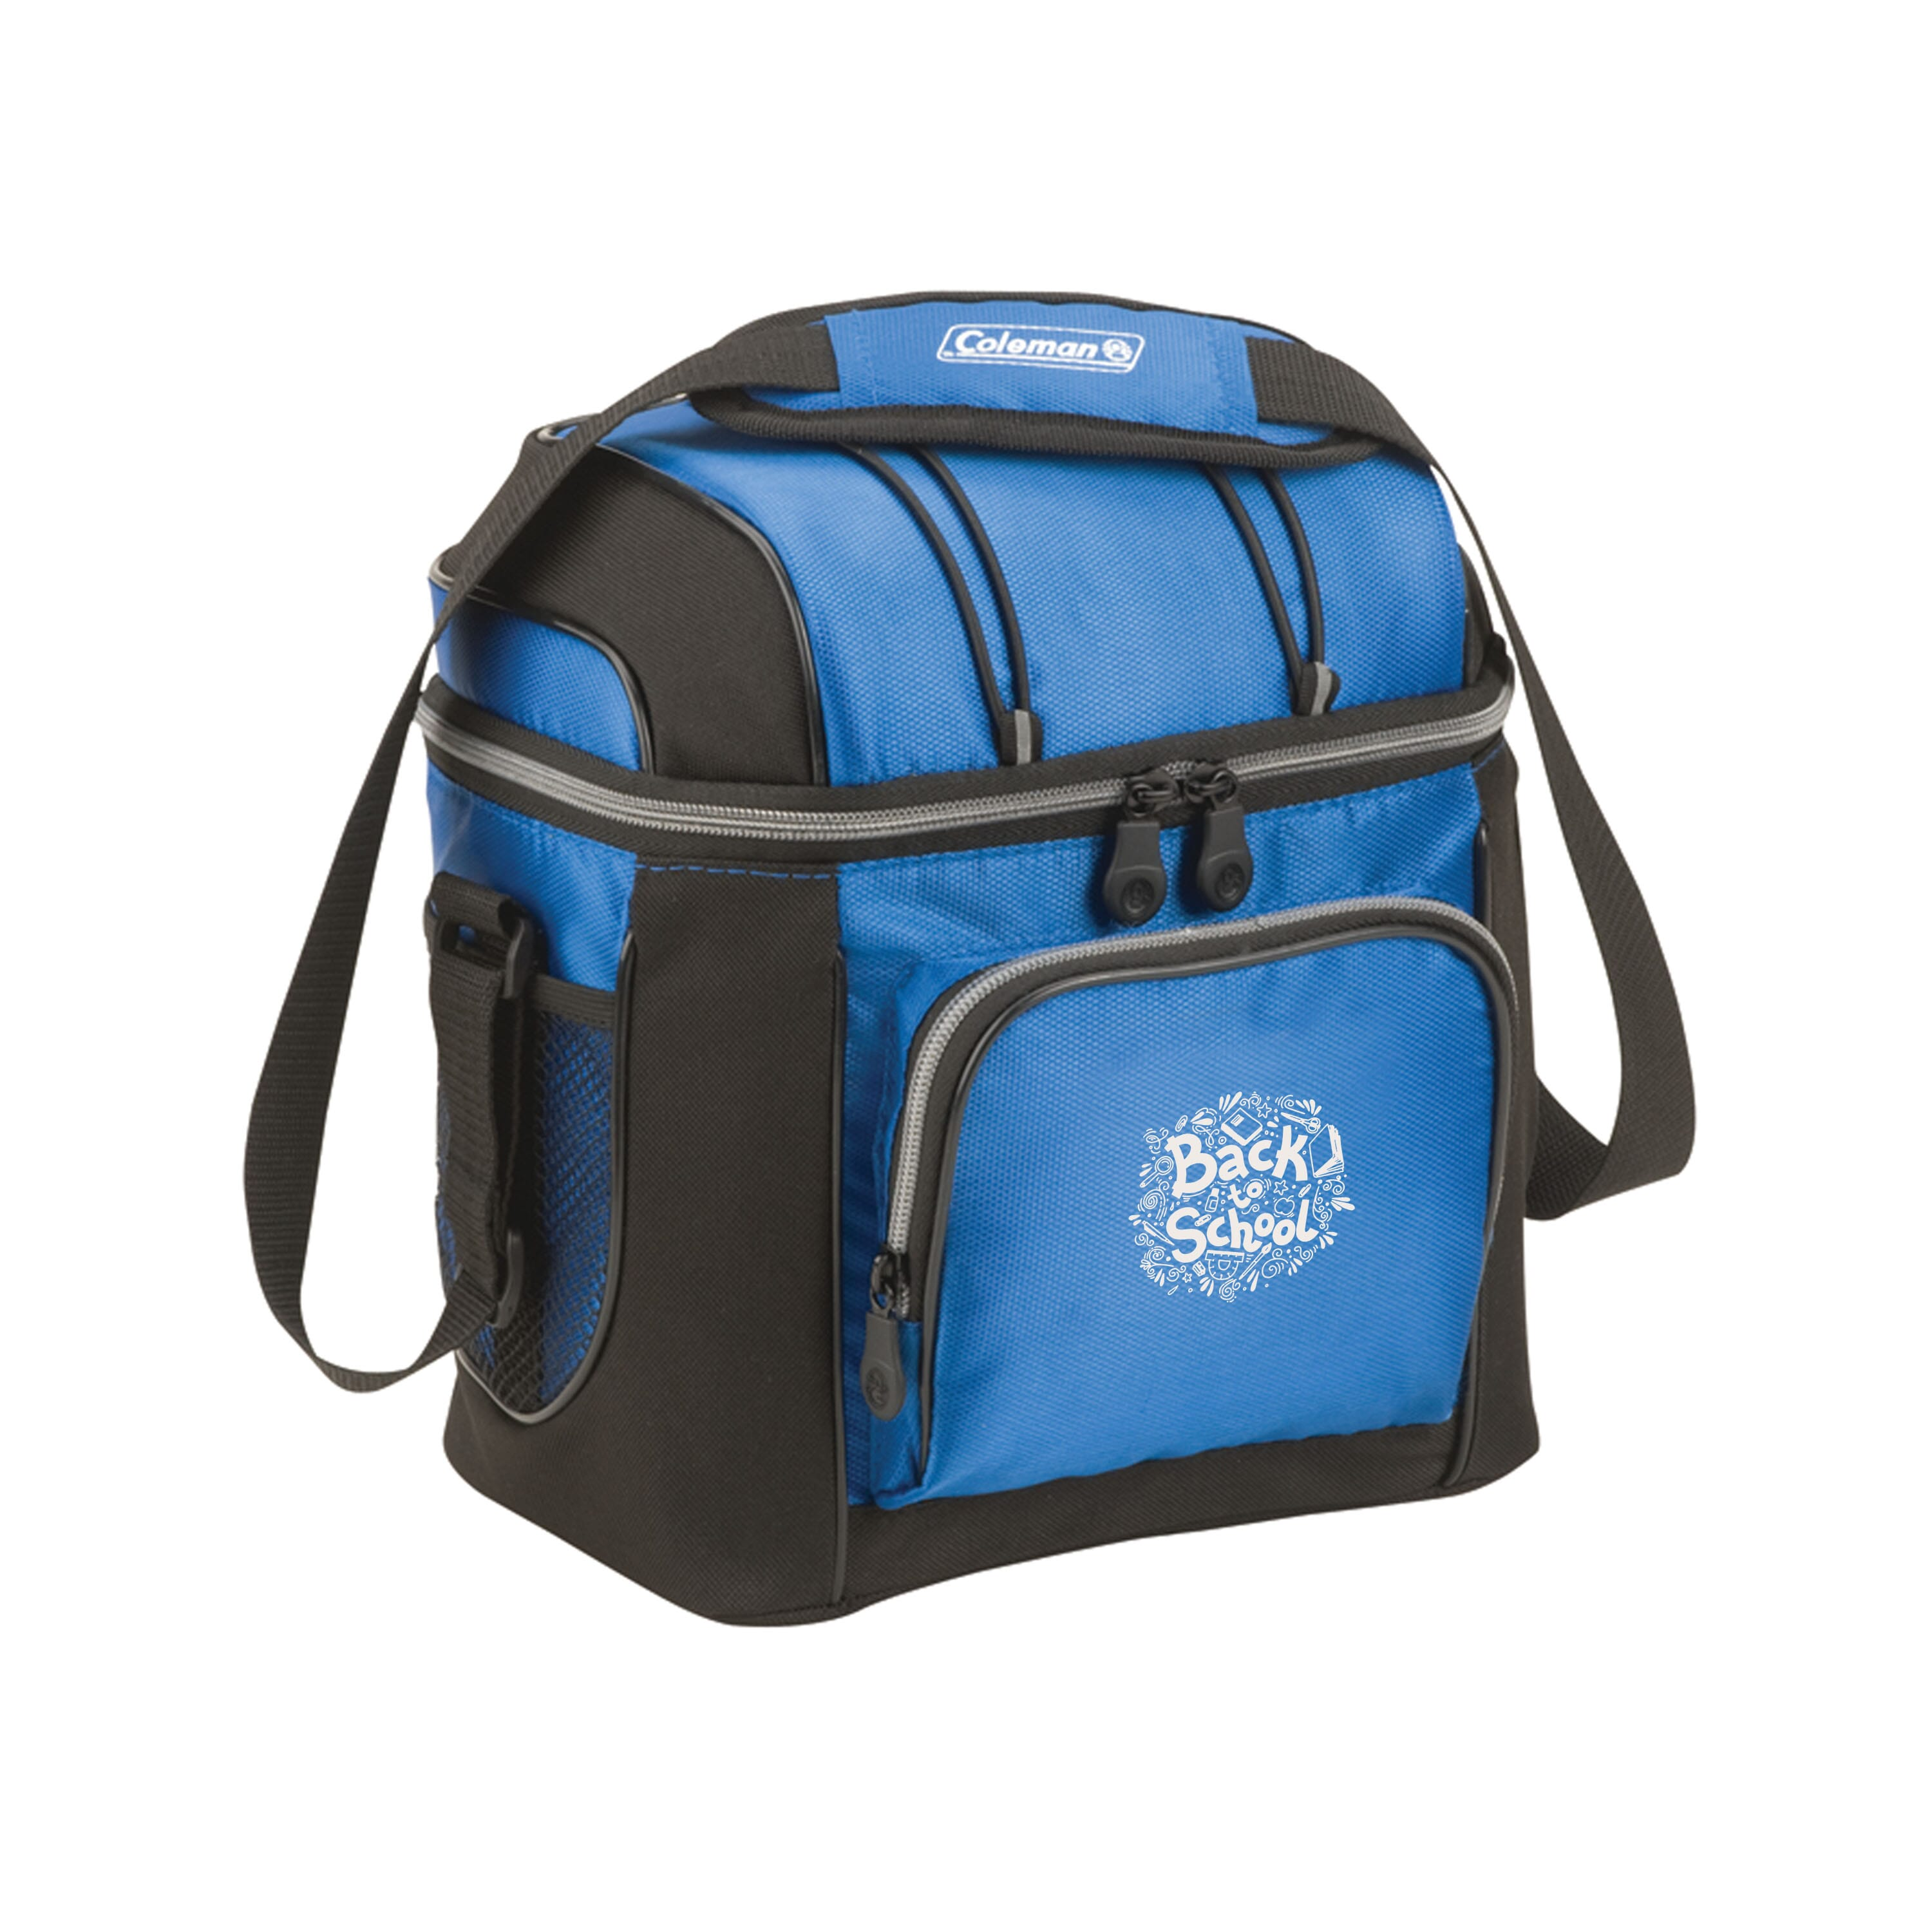 Coleman soft cooler with removal hard plastic liner